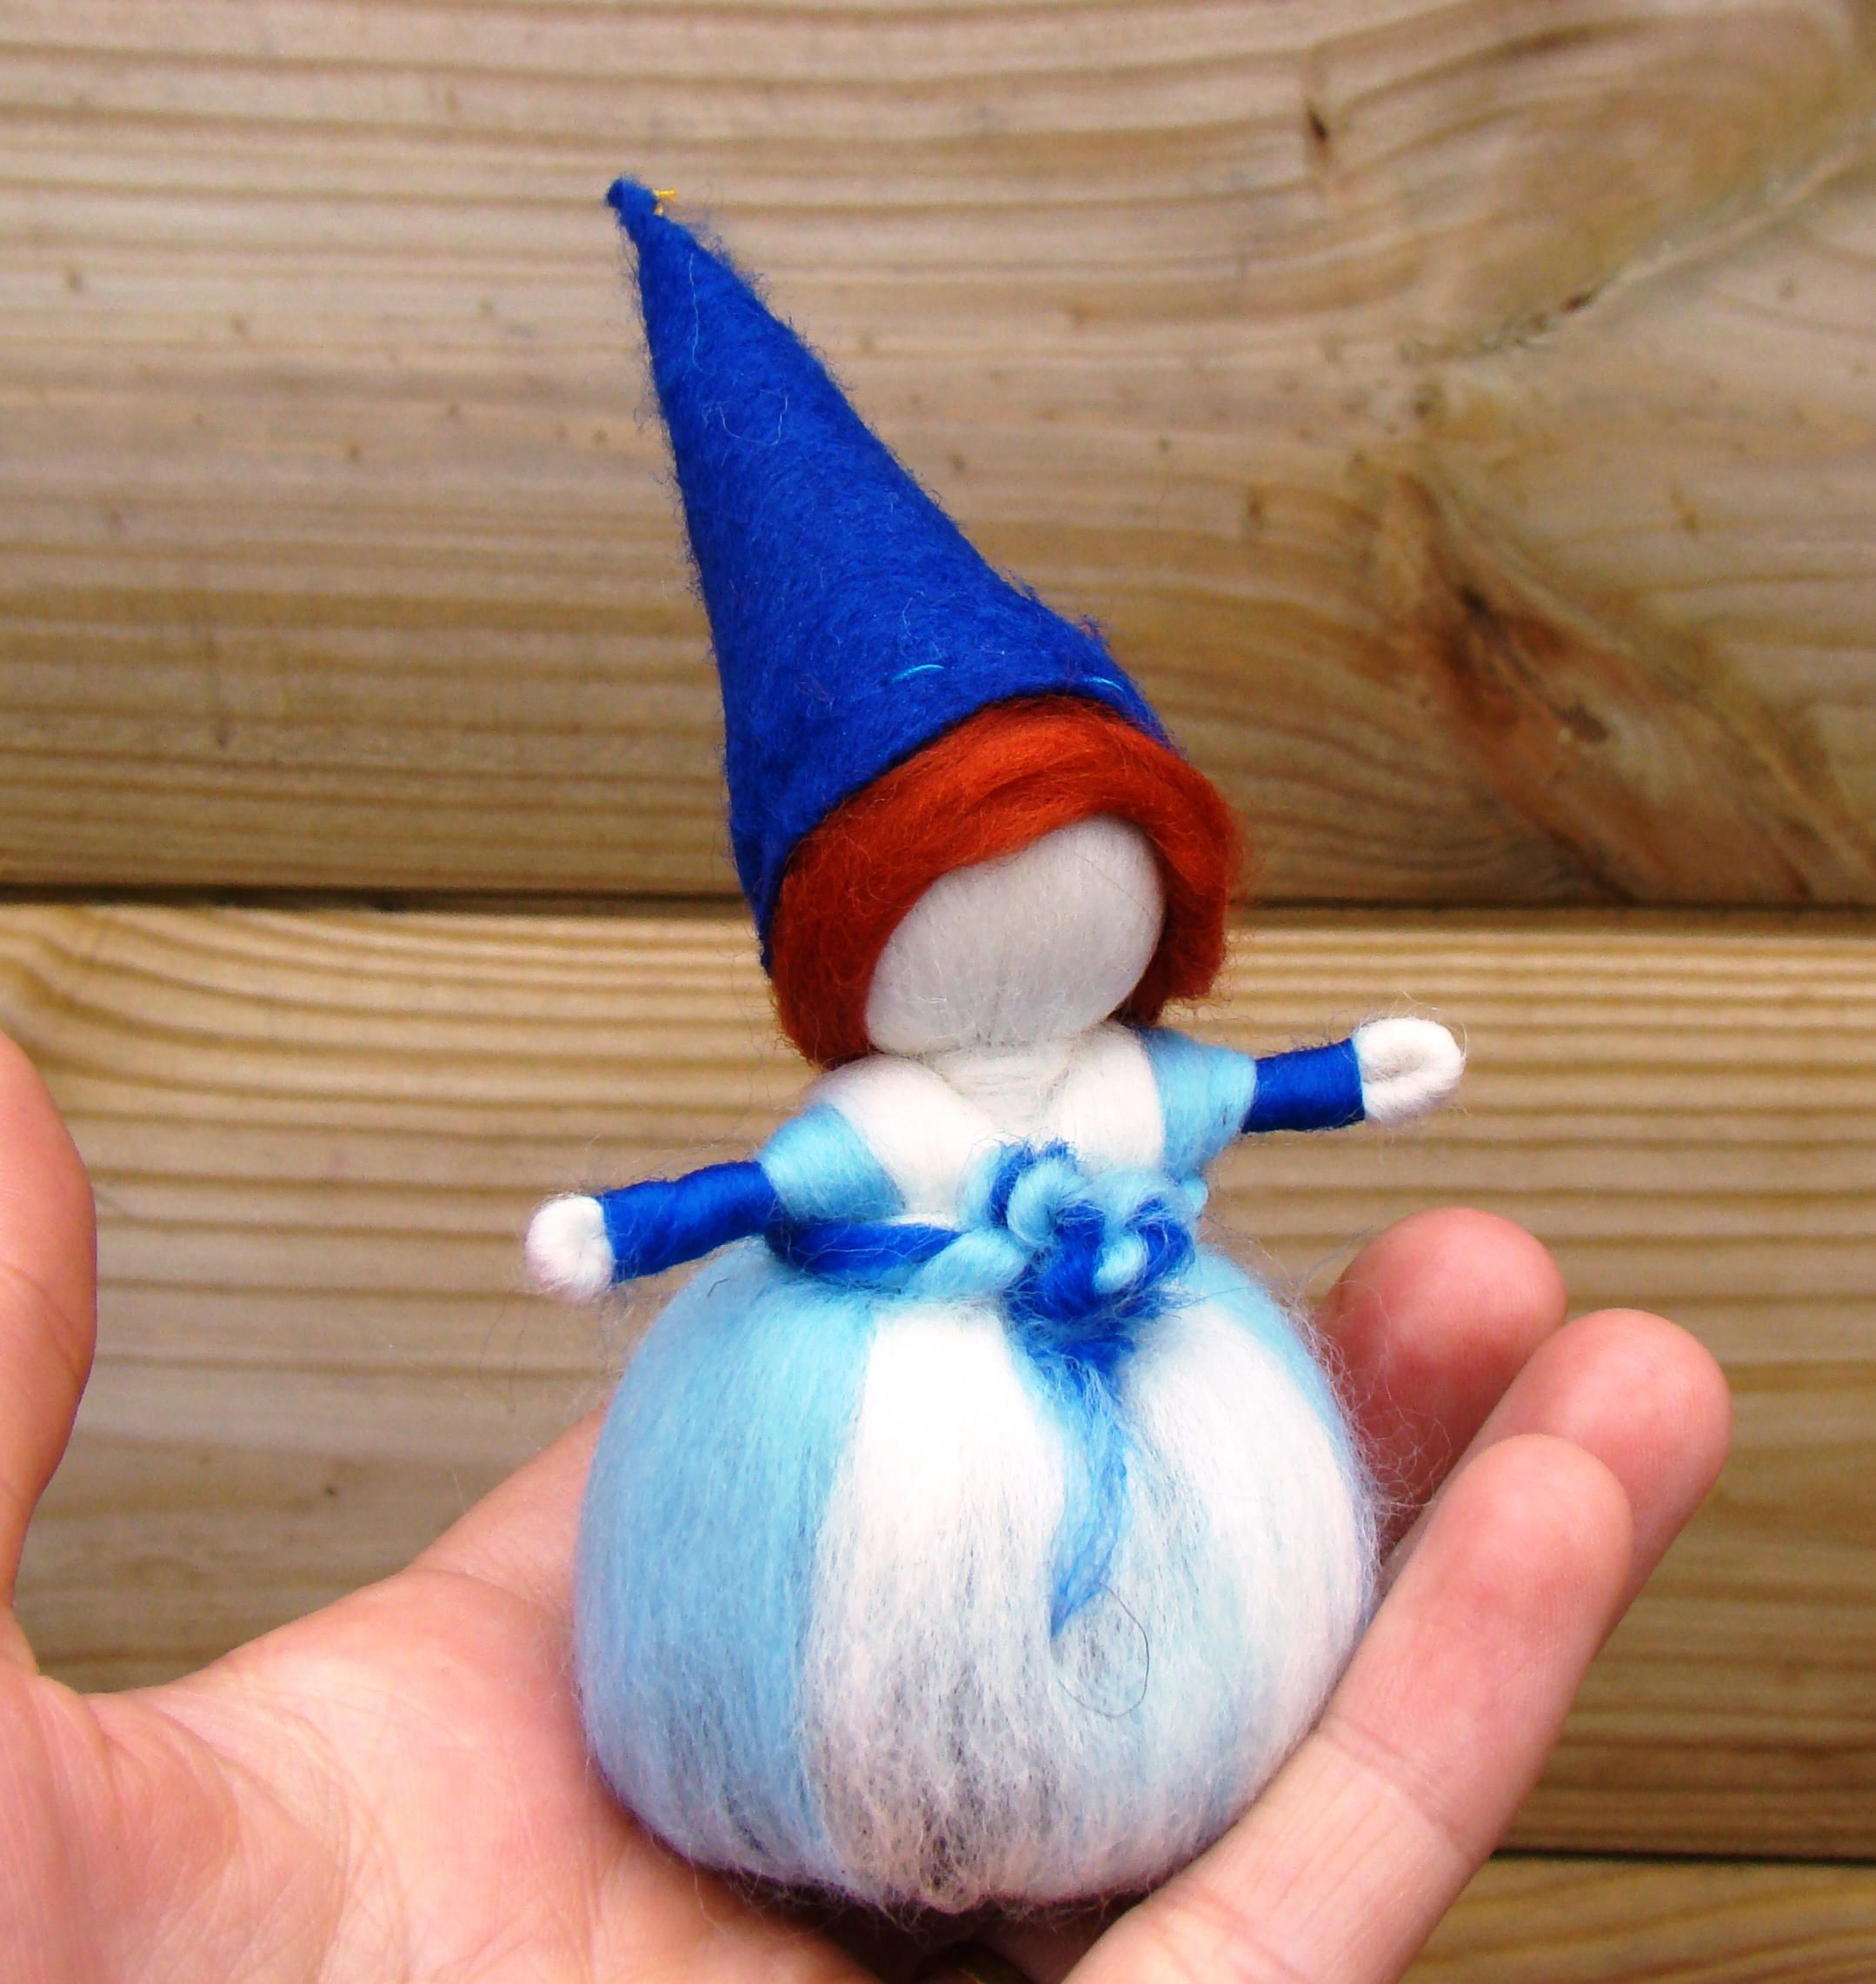 Winter nature table - Christmas Gnome Winter Nature Table Waldorf Story Doll King Winter Elf Steiner Gnome Christmas Stocking Stuffer Elf Blue Wool Pixie Uk